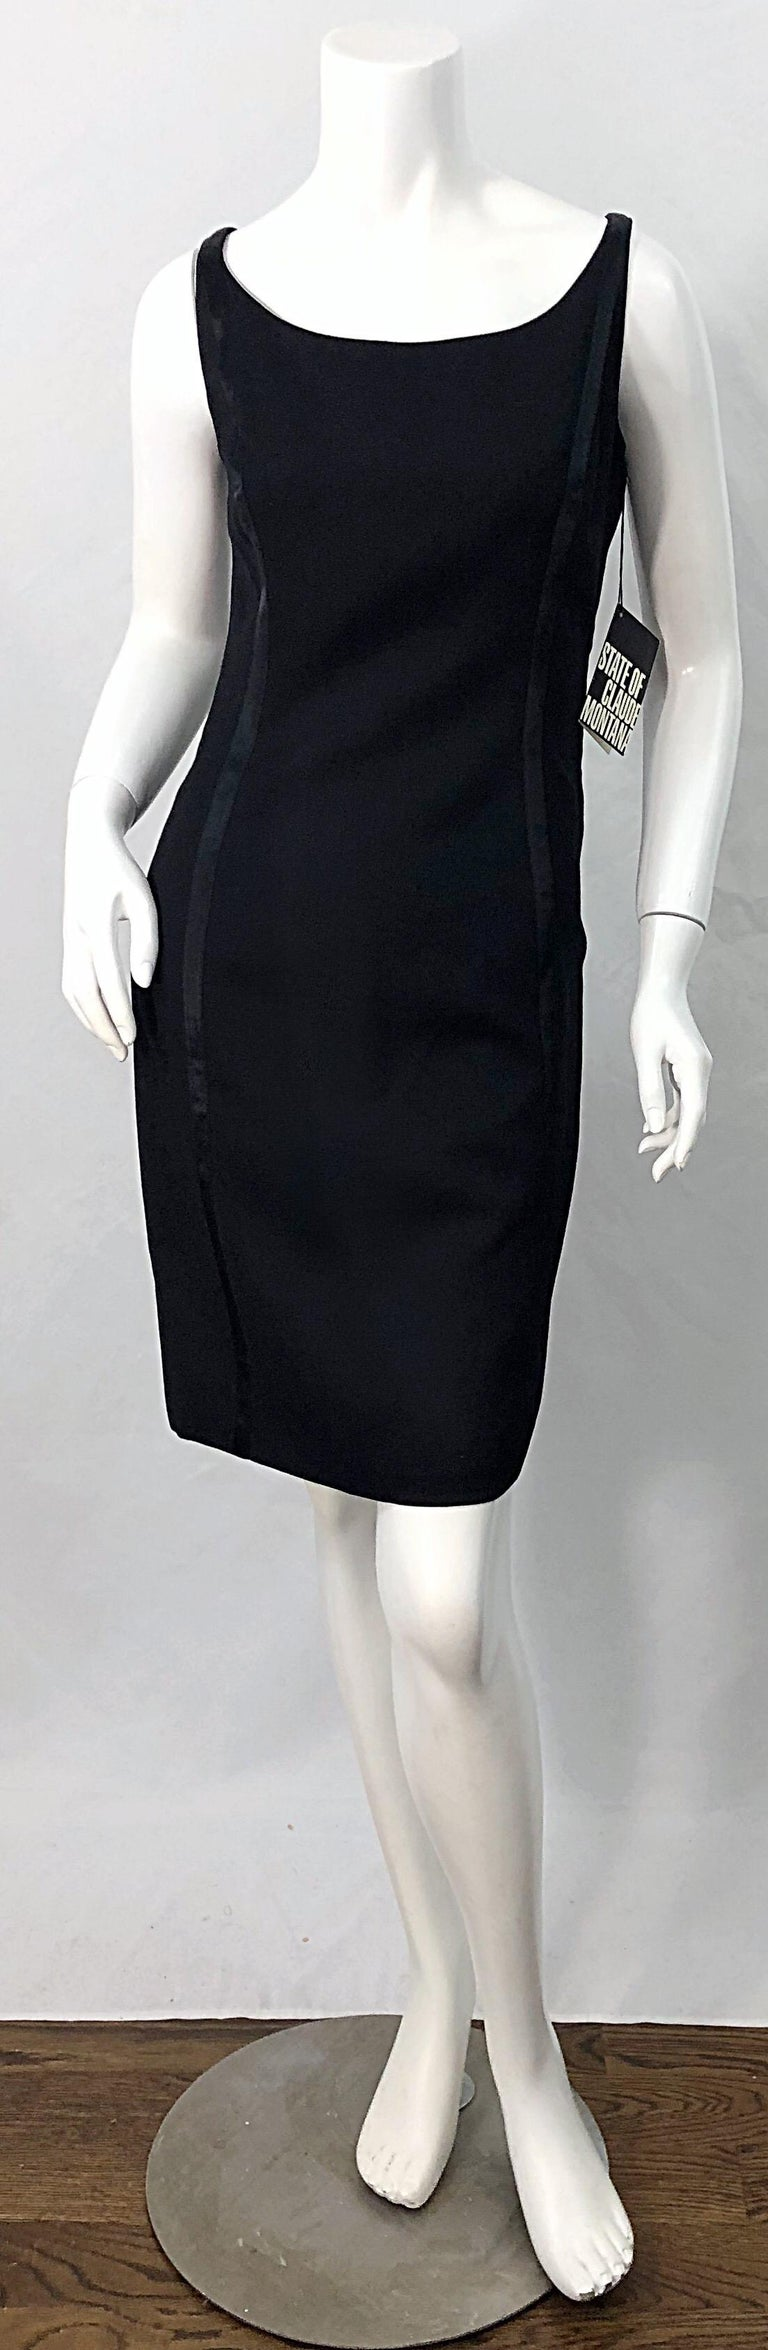 NWT 1990s Claude Montana Size 6 Vintage 90s Sleeveless Little Black Dress  For Sale 10